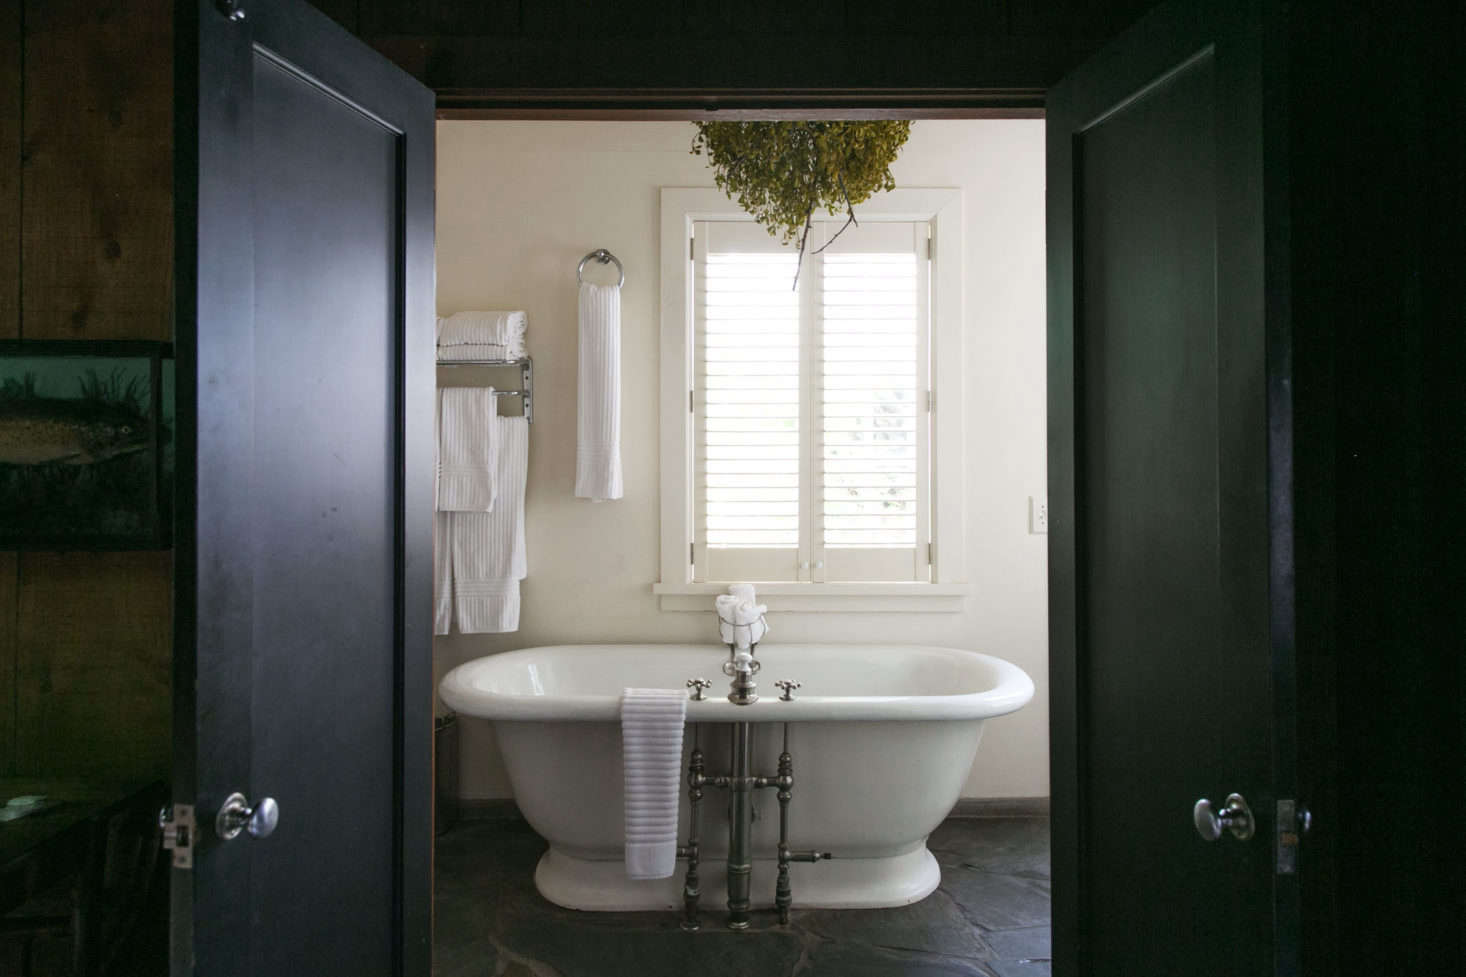 A ball of foraged mistletoe hangs above the freestanding tub in the cabin